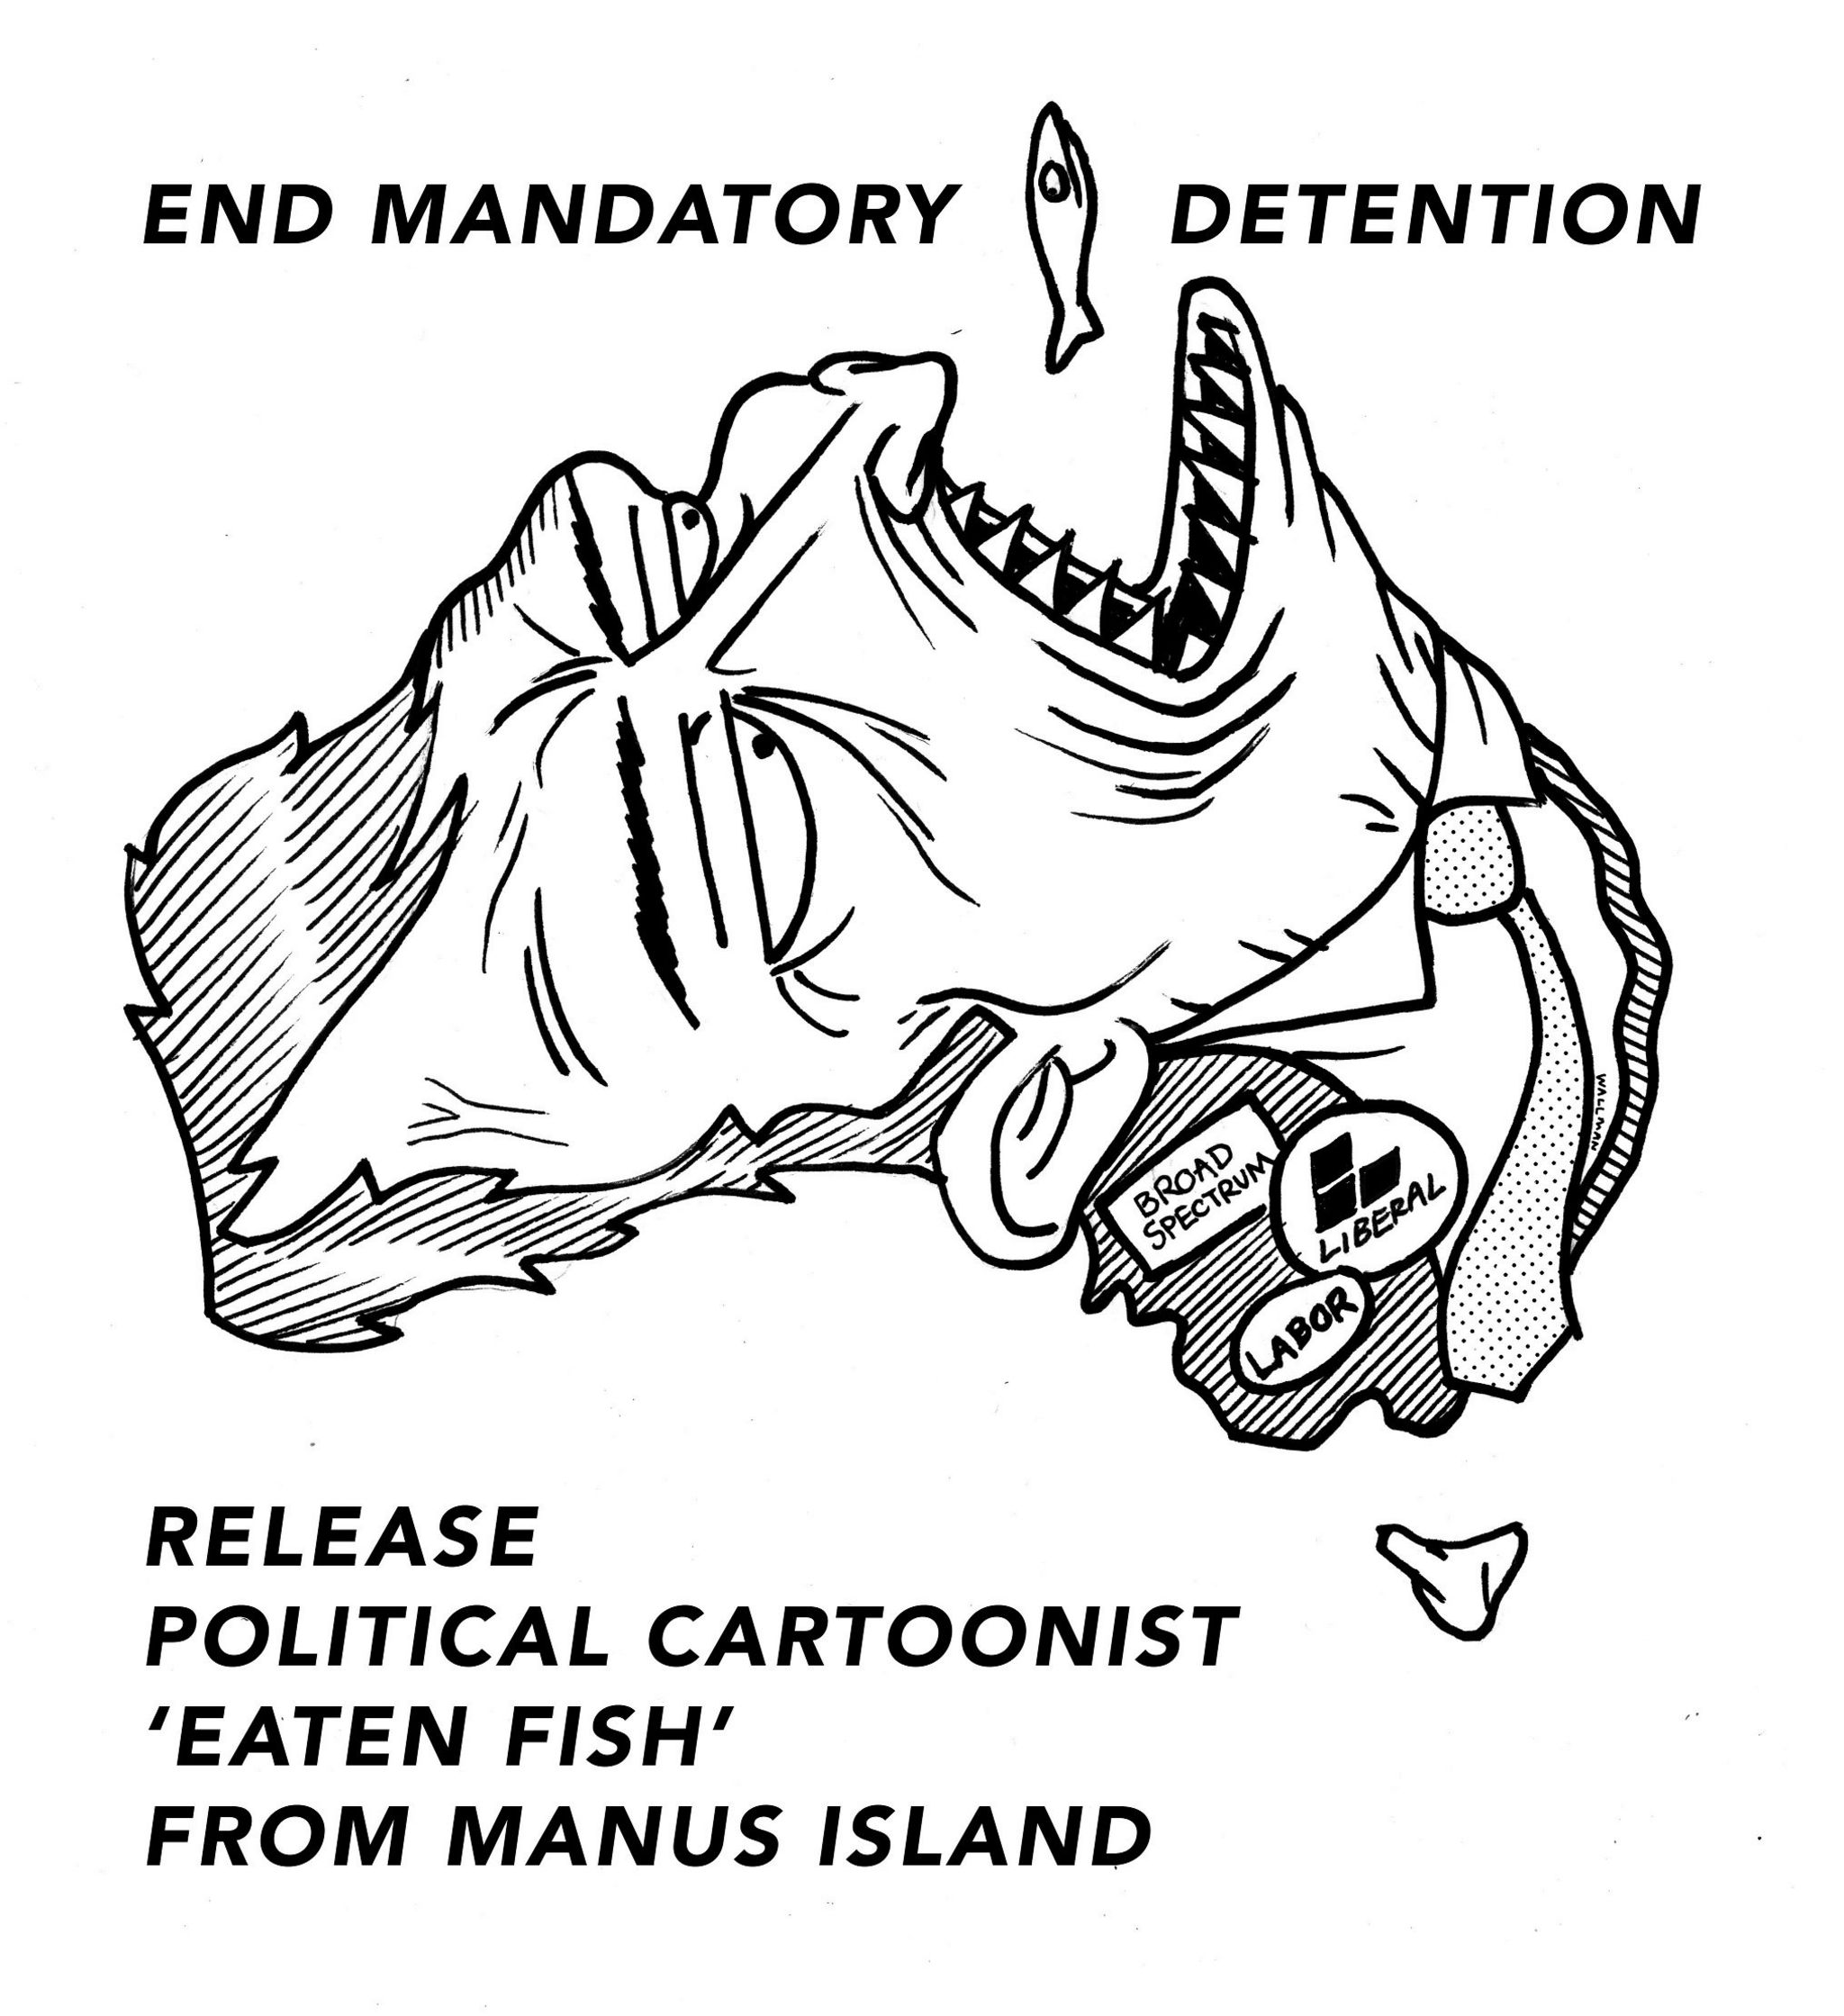 Sam Wallman's cartoon showing Australia, as a face, trying to eat a fish